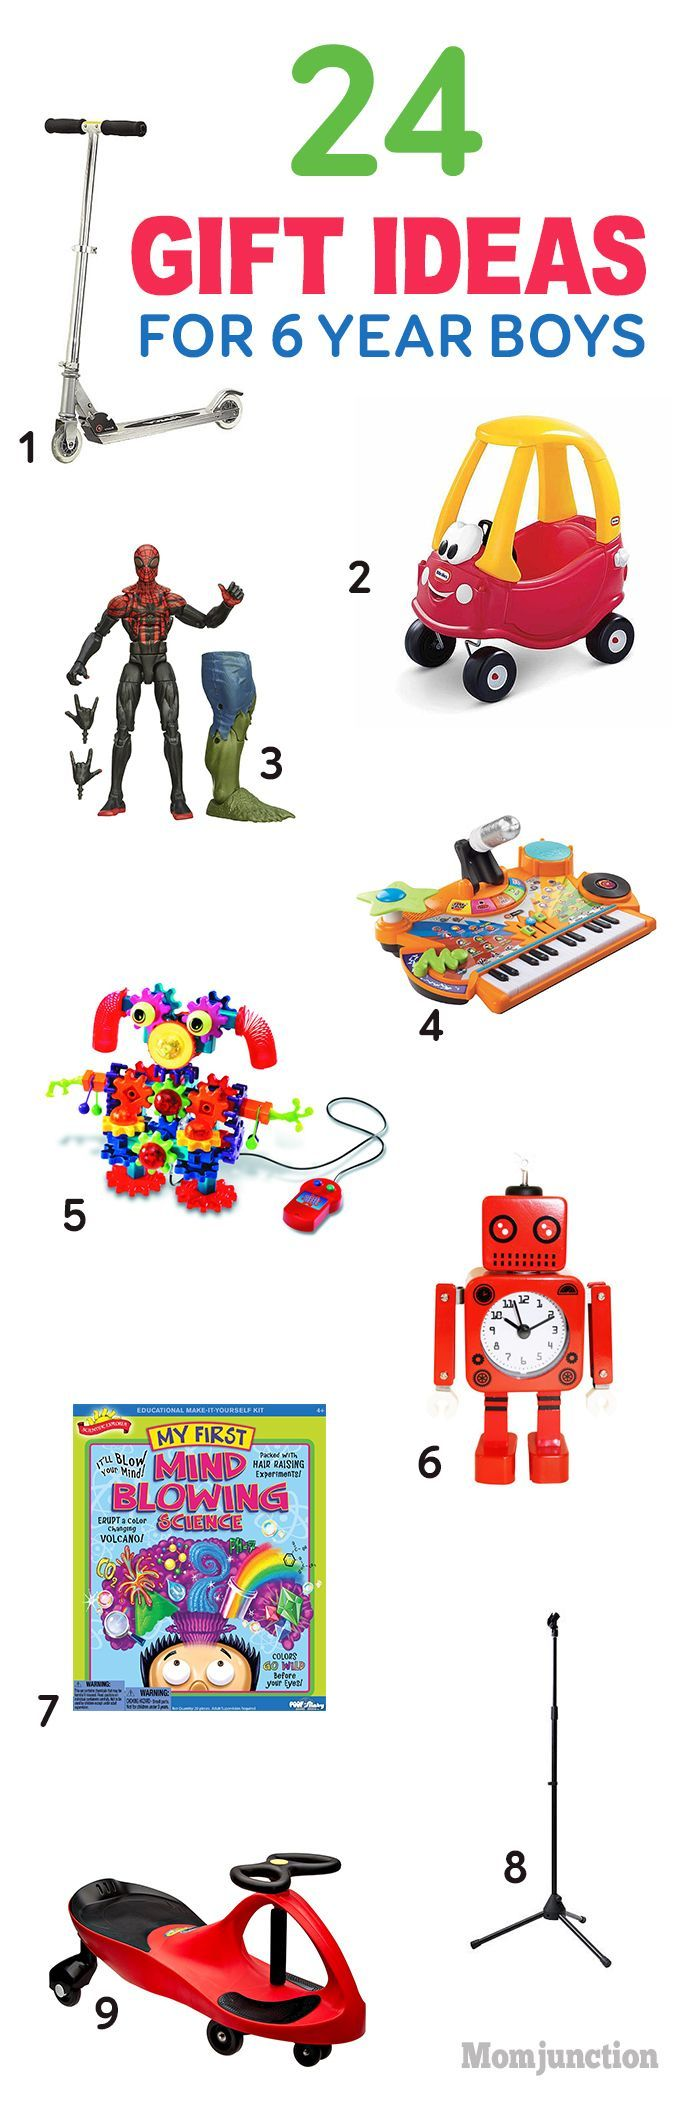 Best Toys Gifts For 6 Year Old Boys : Best images about toys for year old boy on pinterest